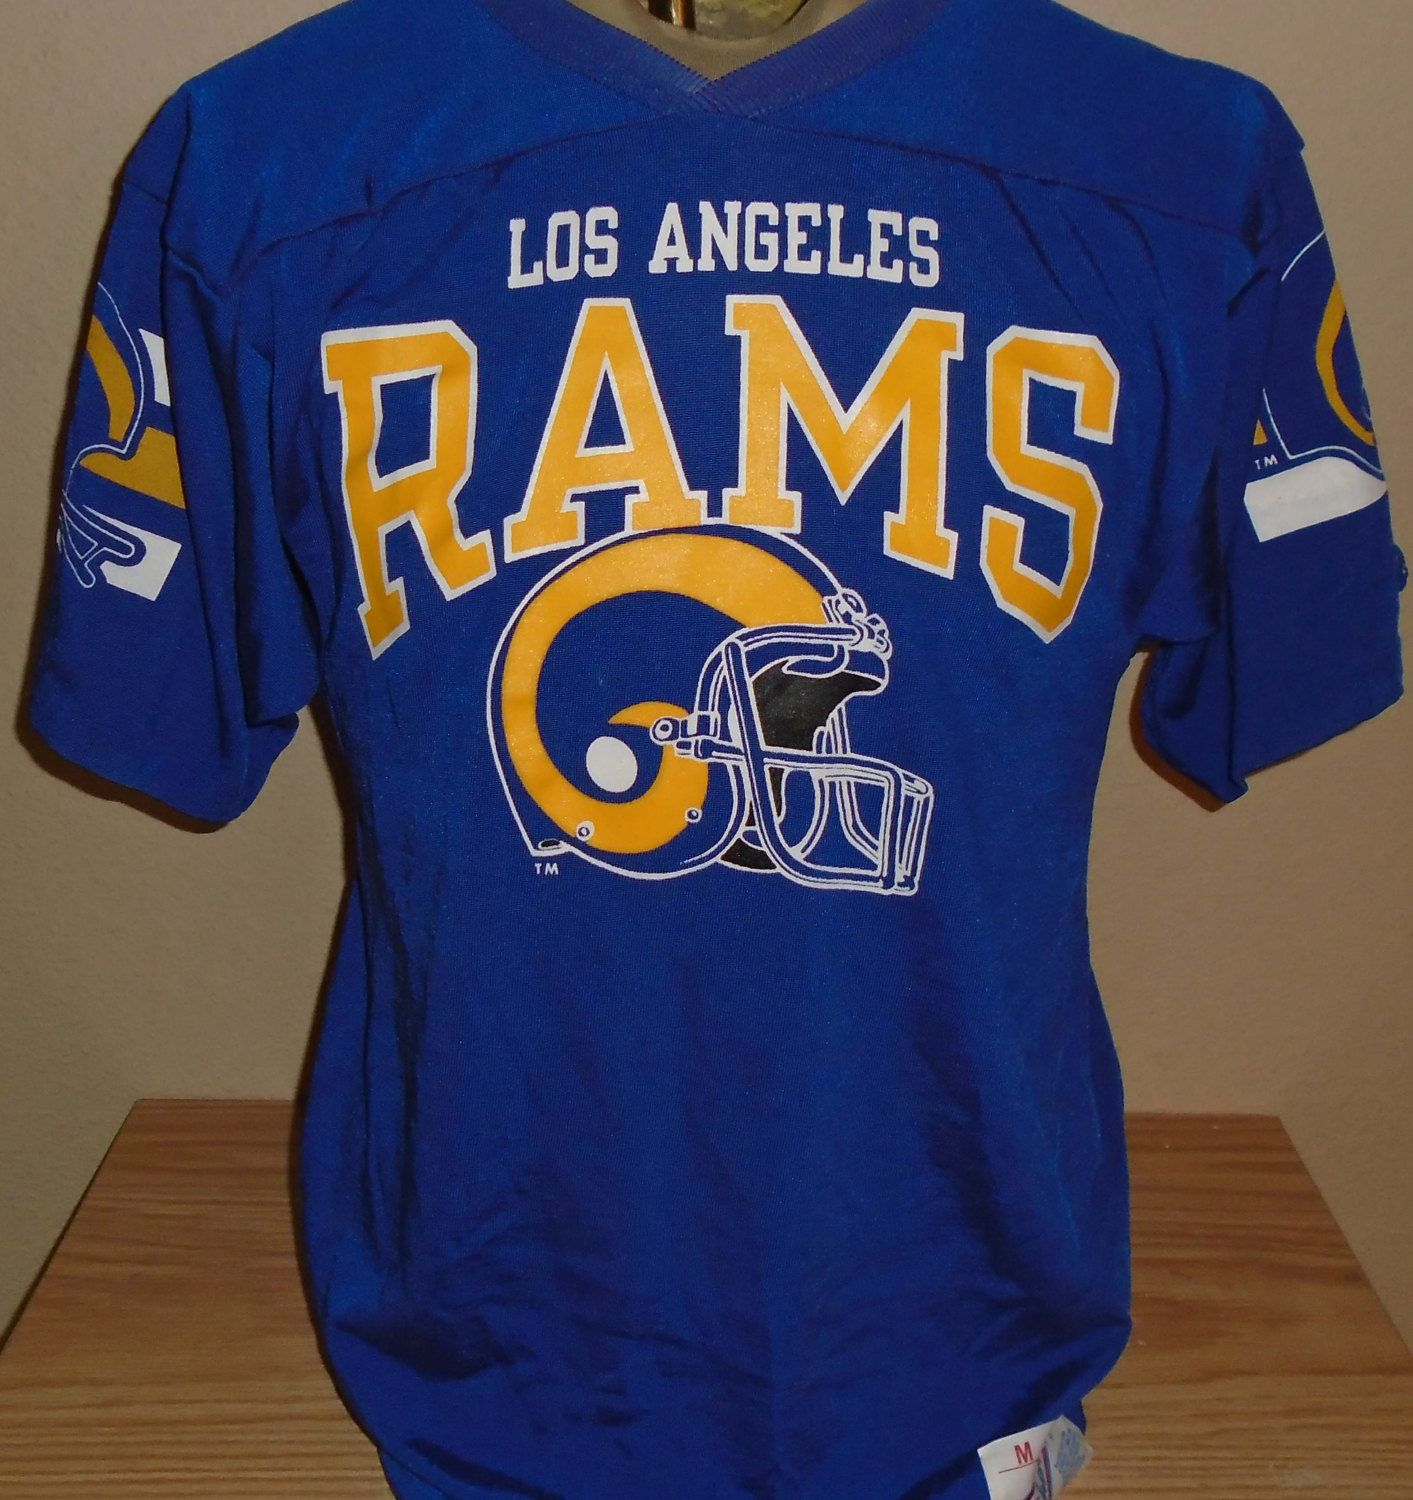 sale retailer ad54d 99828 vintage 1980s Los Angeles Rams football t shirt Jersey ...